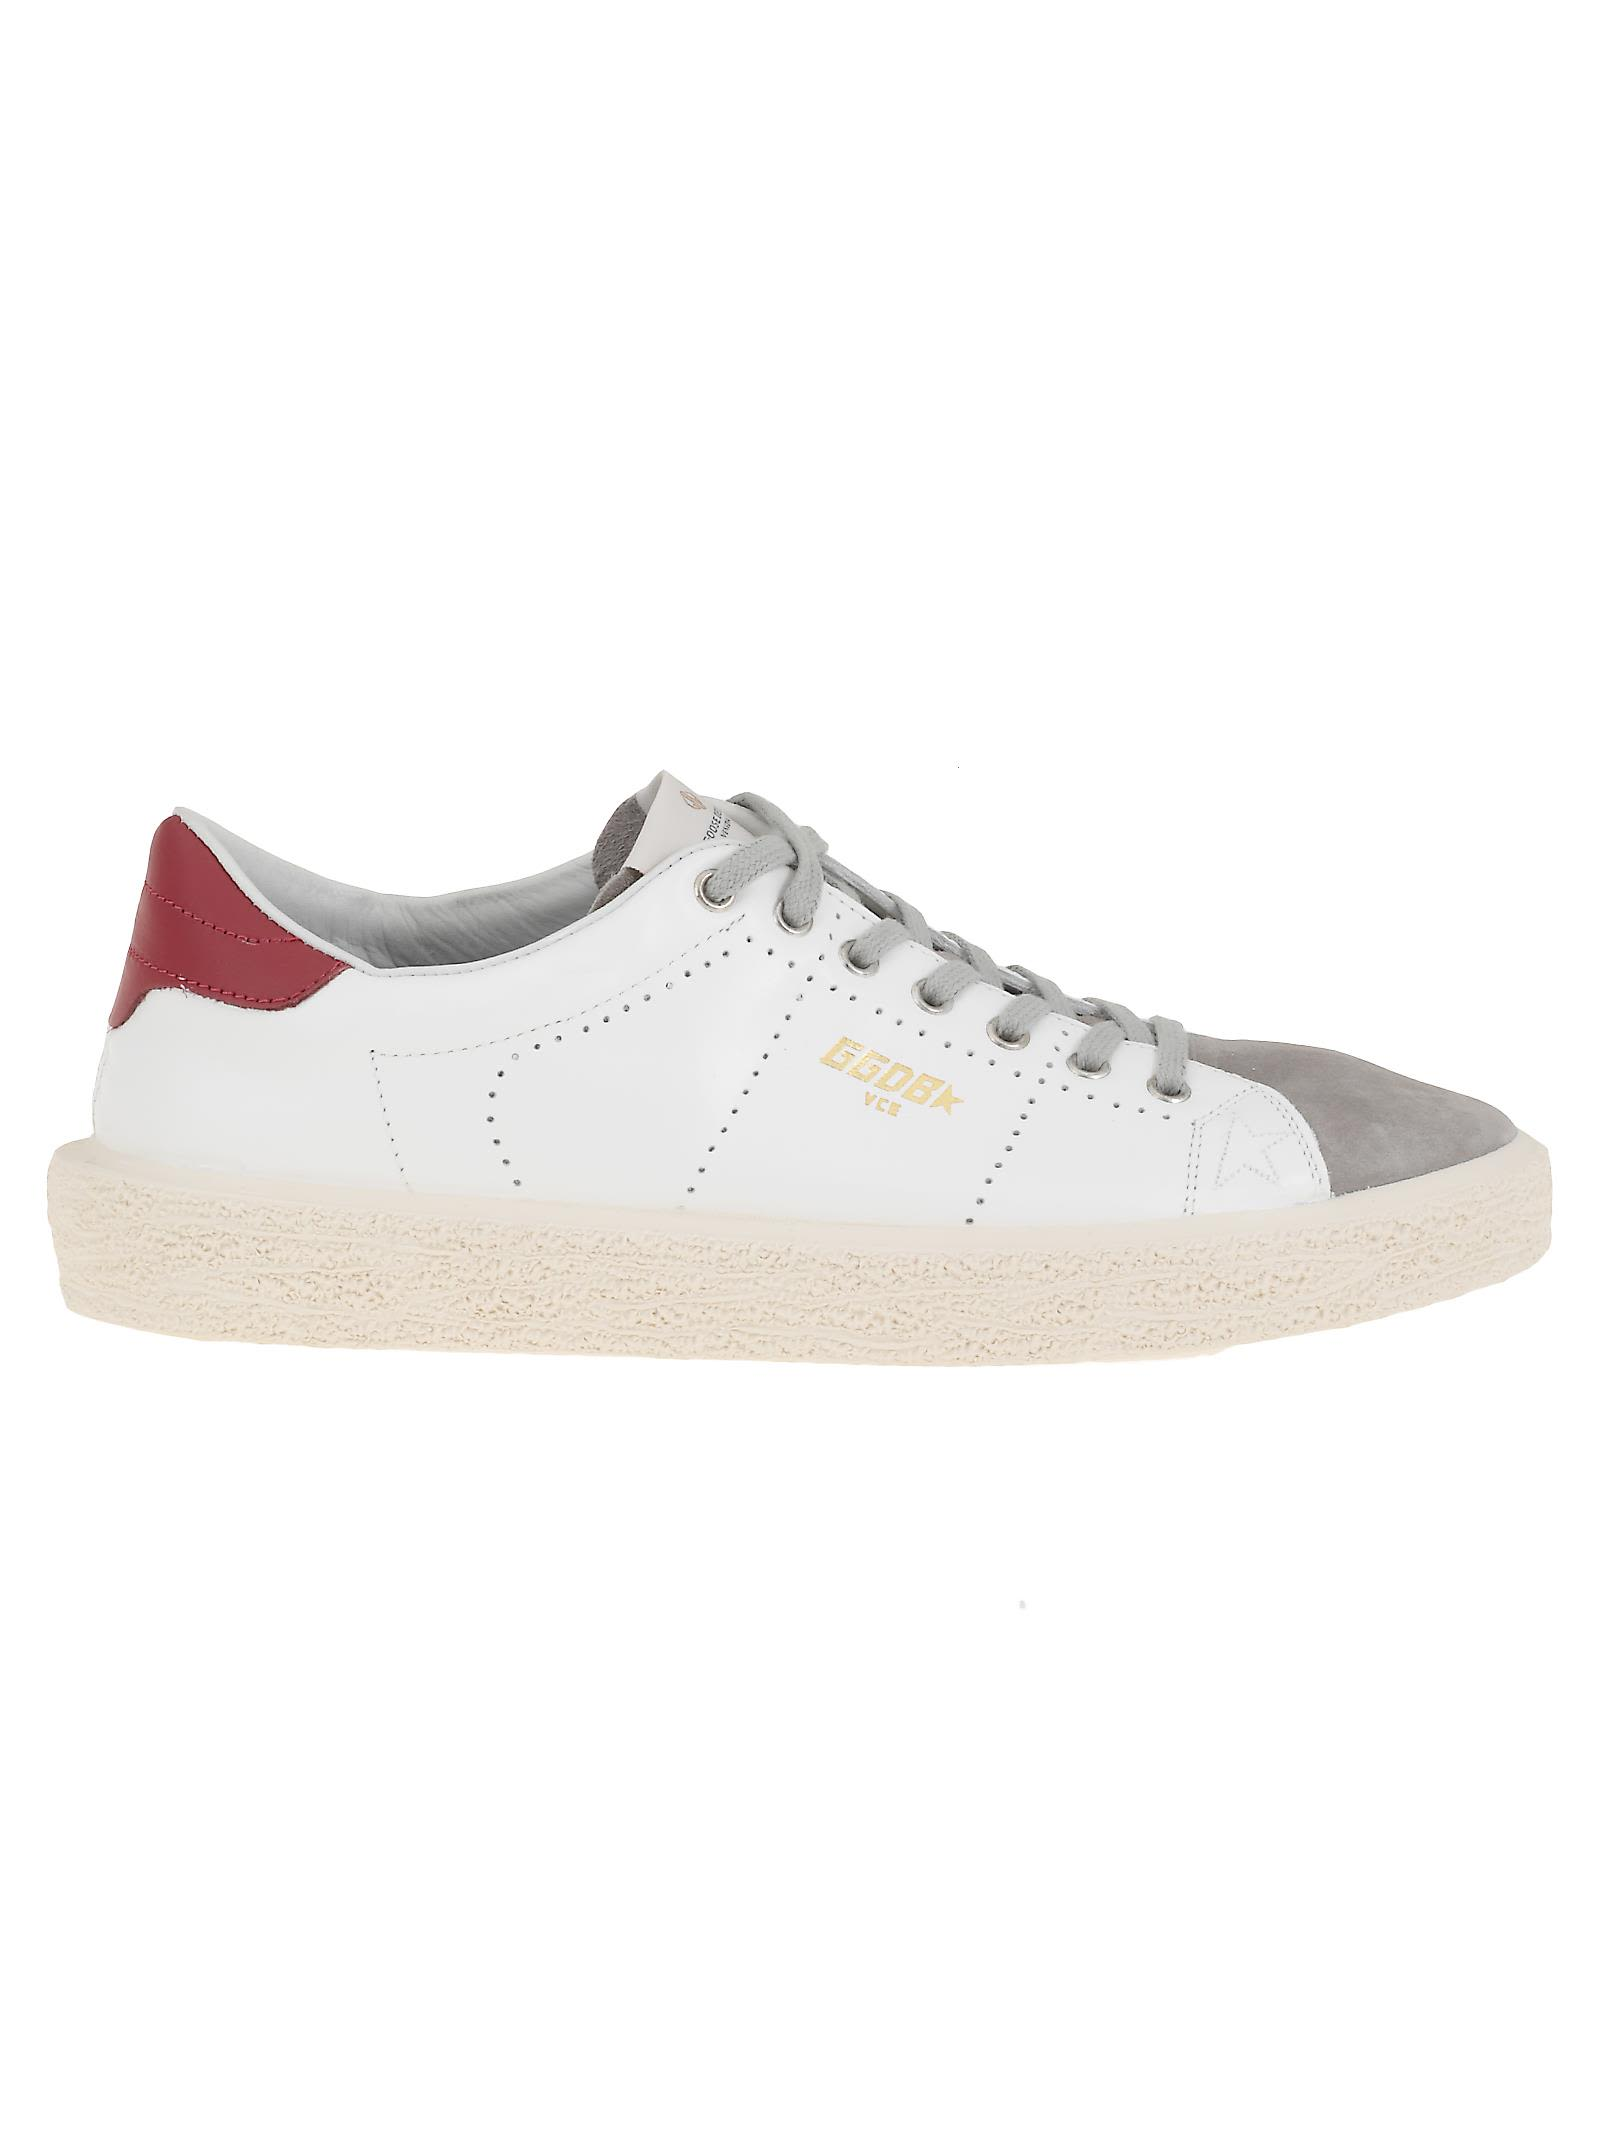 GOLDEN GOOSE TENNIS SNEAKER